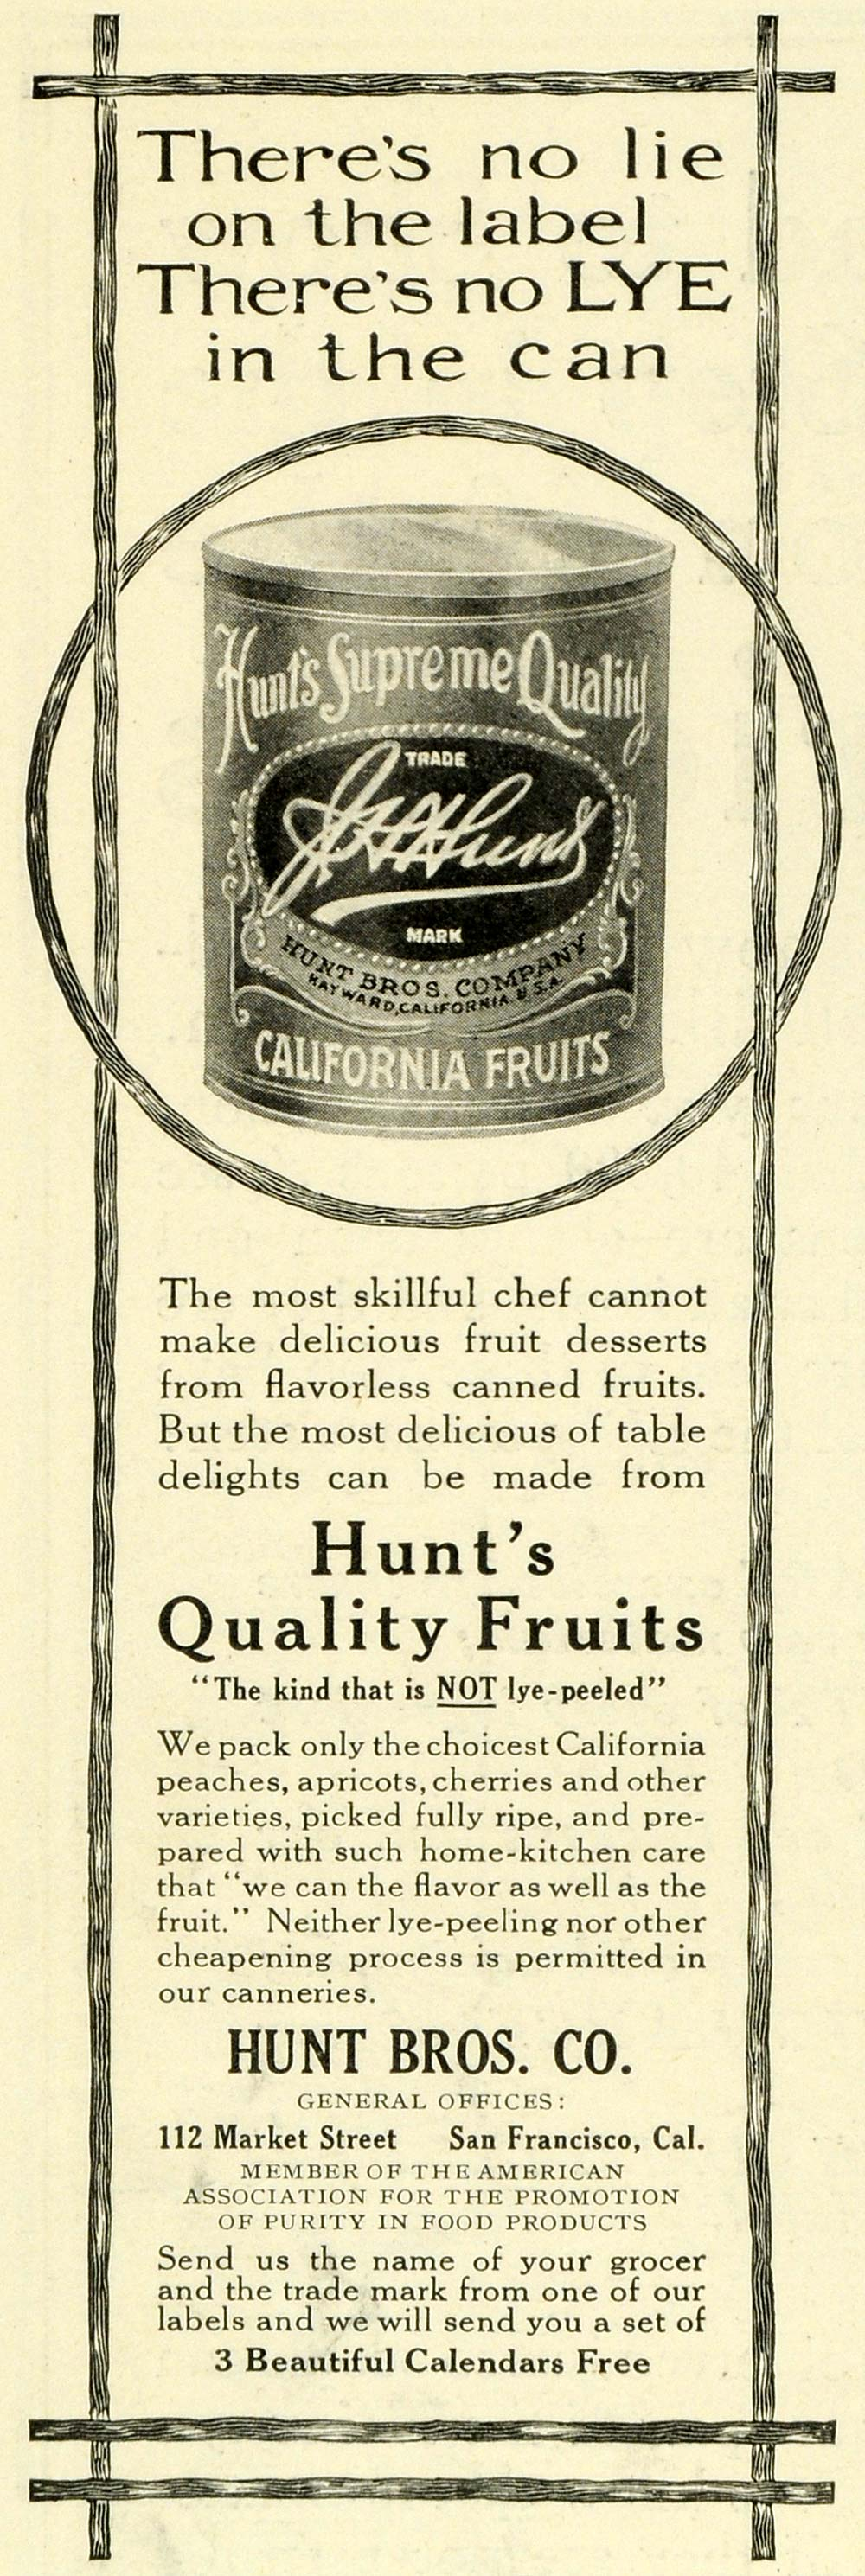 1911 Ad Hunt's Canned Fruits Desserts Peaches Cherries Apricots San LHJ6